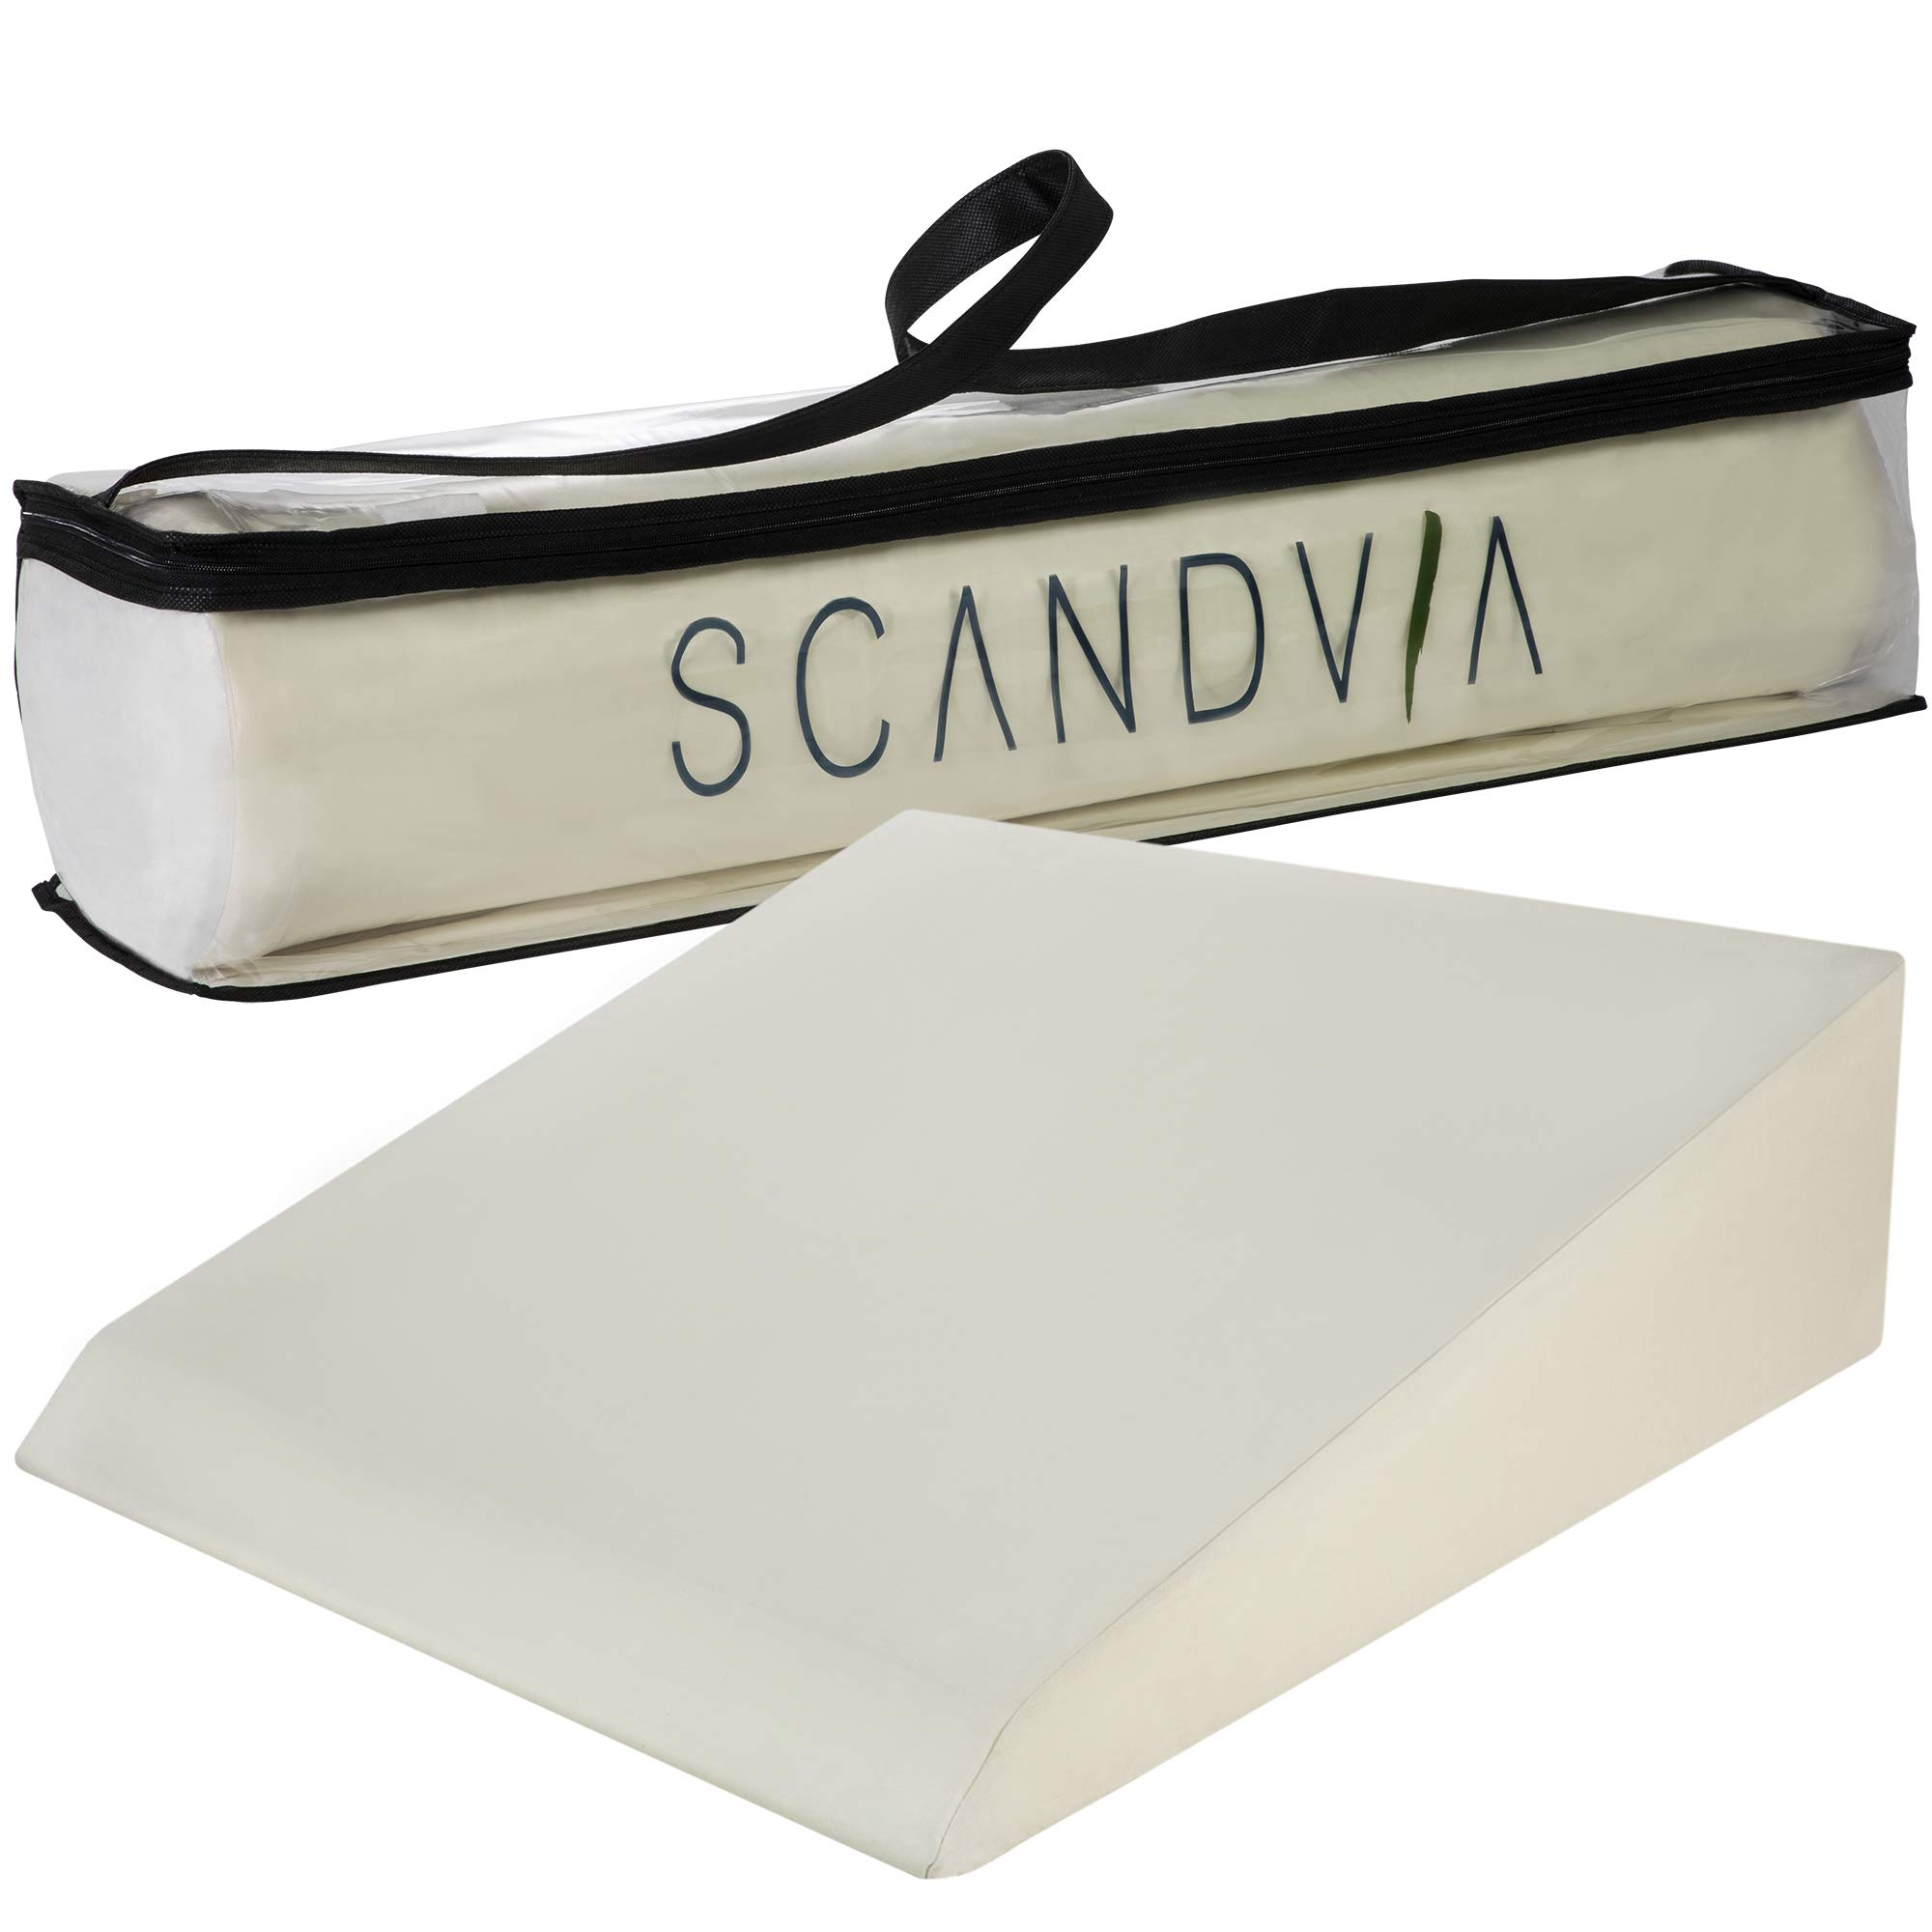 XL Memory Foam Wedge Pillow with Large, Soft Linen Cover - 8'' Wider Than Most Sold